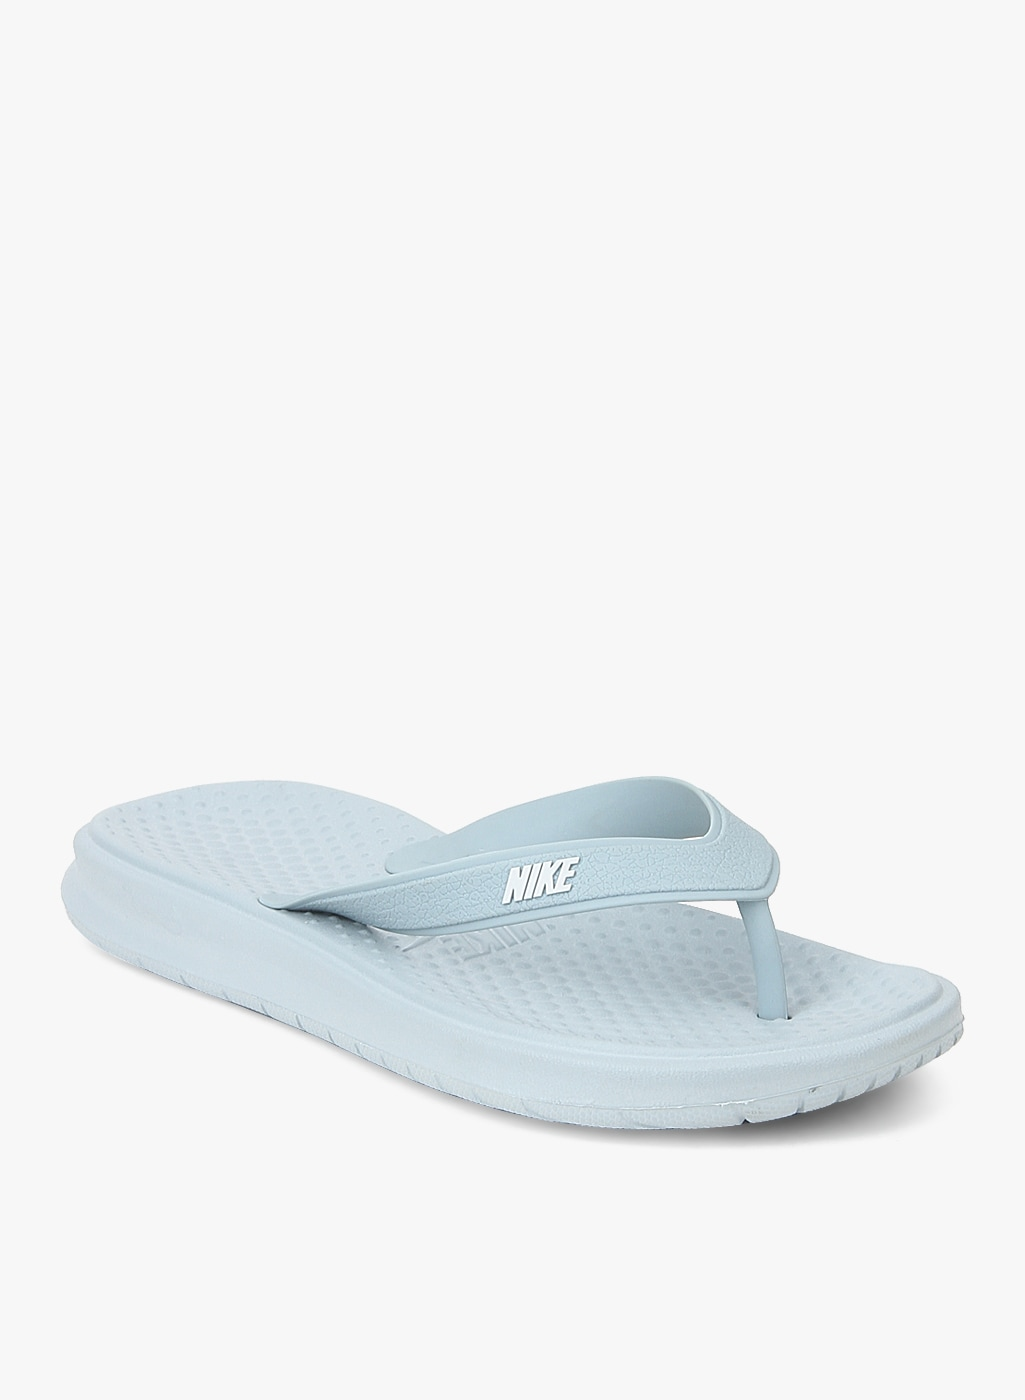 801ef7ff15d68 Buy Nike Solay Thong Black Slippers Online - 5546448 - Jabong